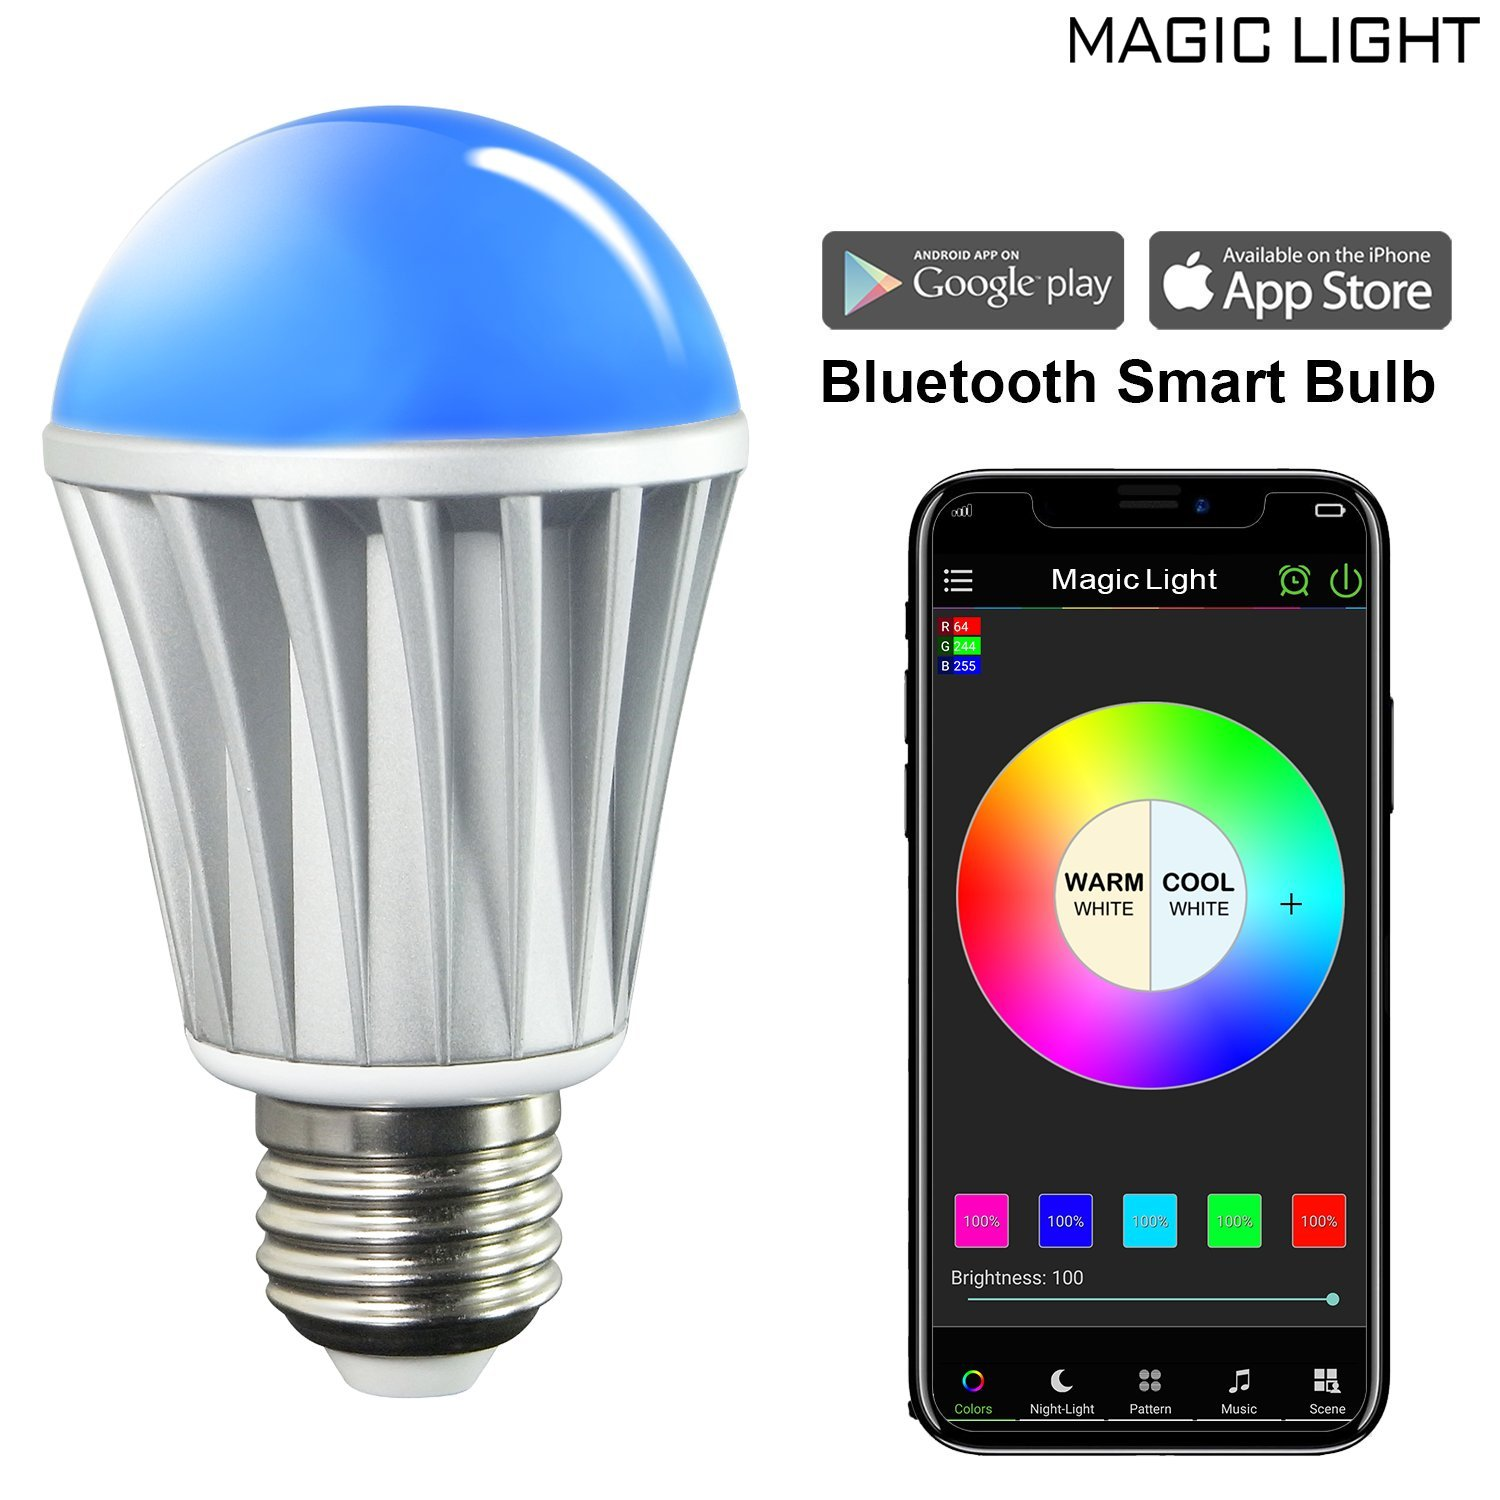 MagicLight Bluetooth Smart Light Bulb - 60w Equivalent Wake Up ...